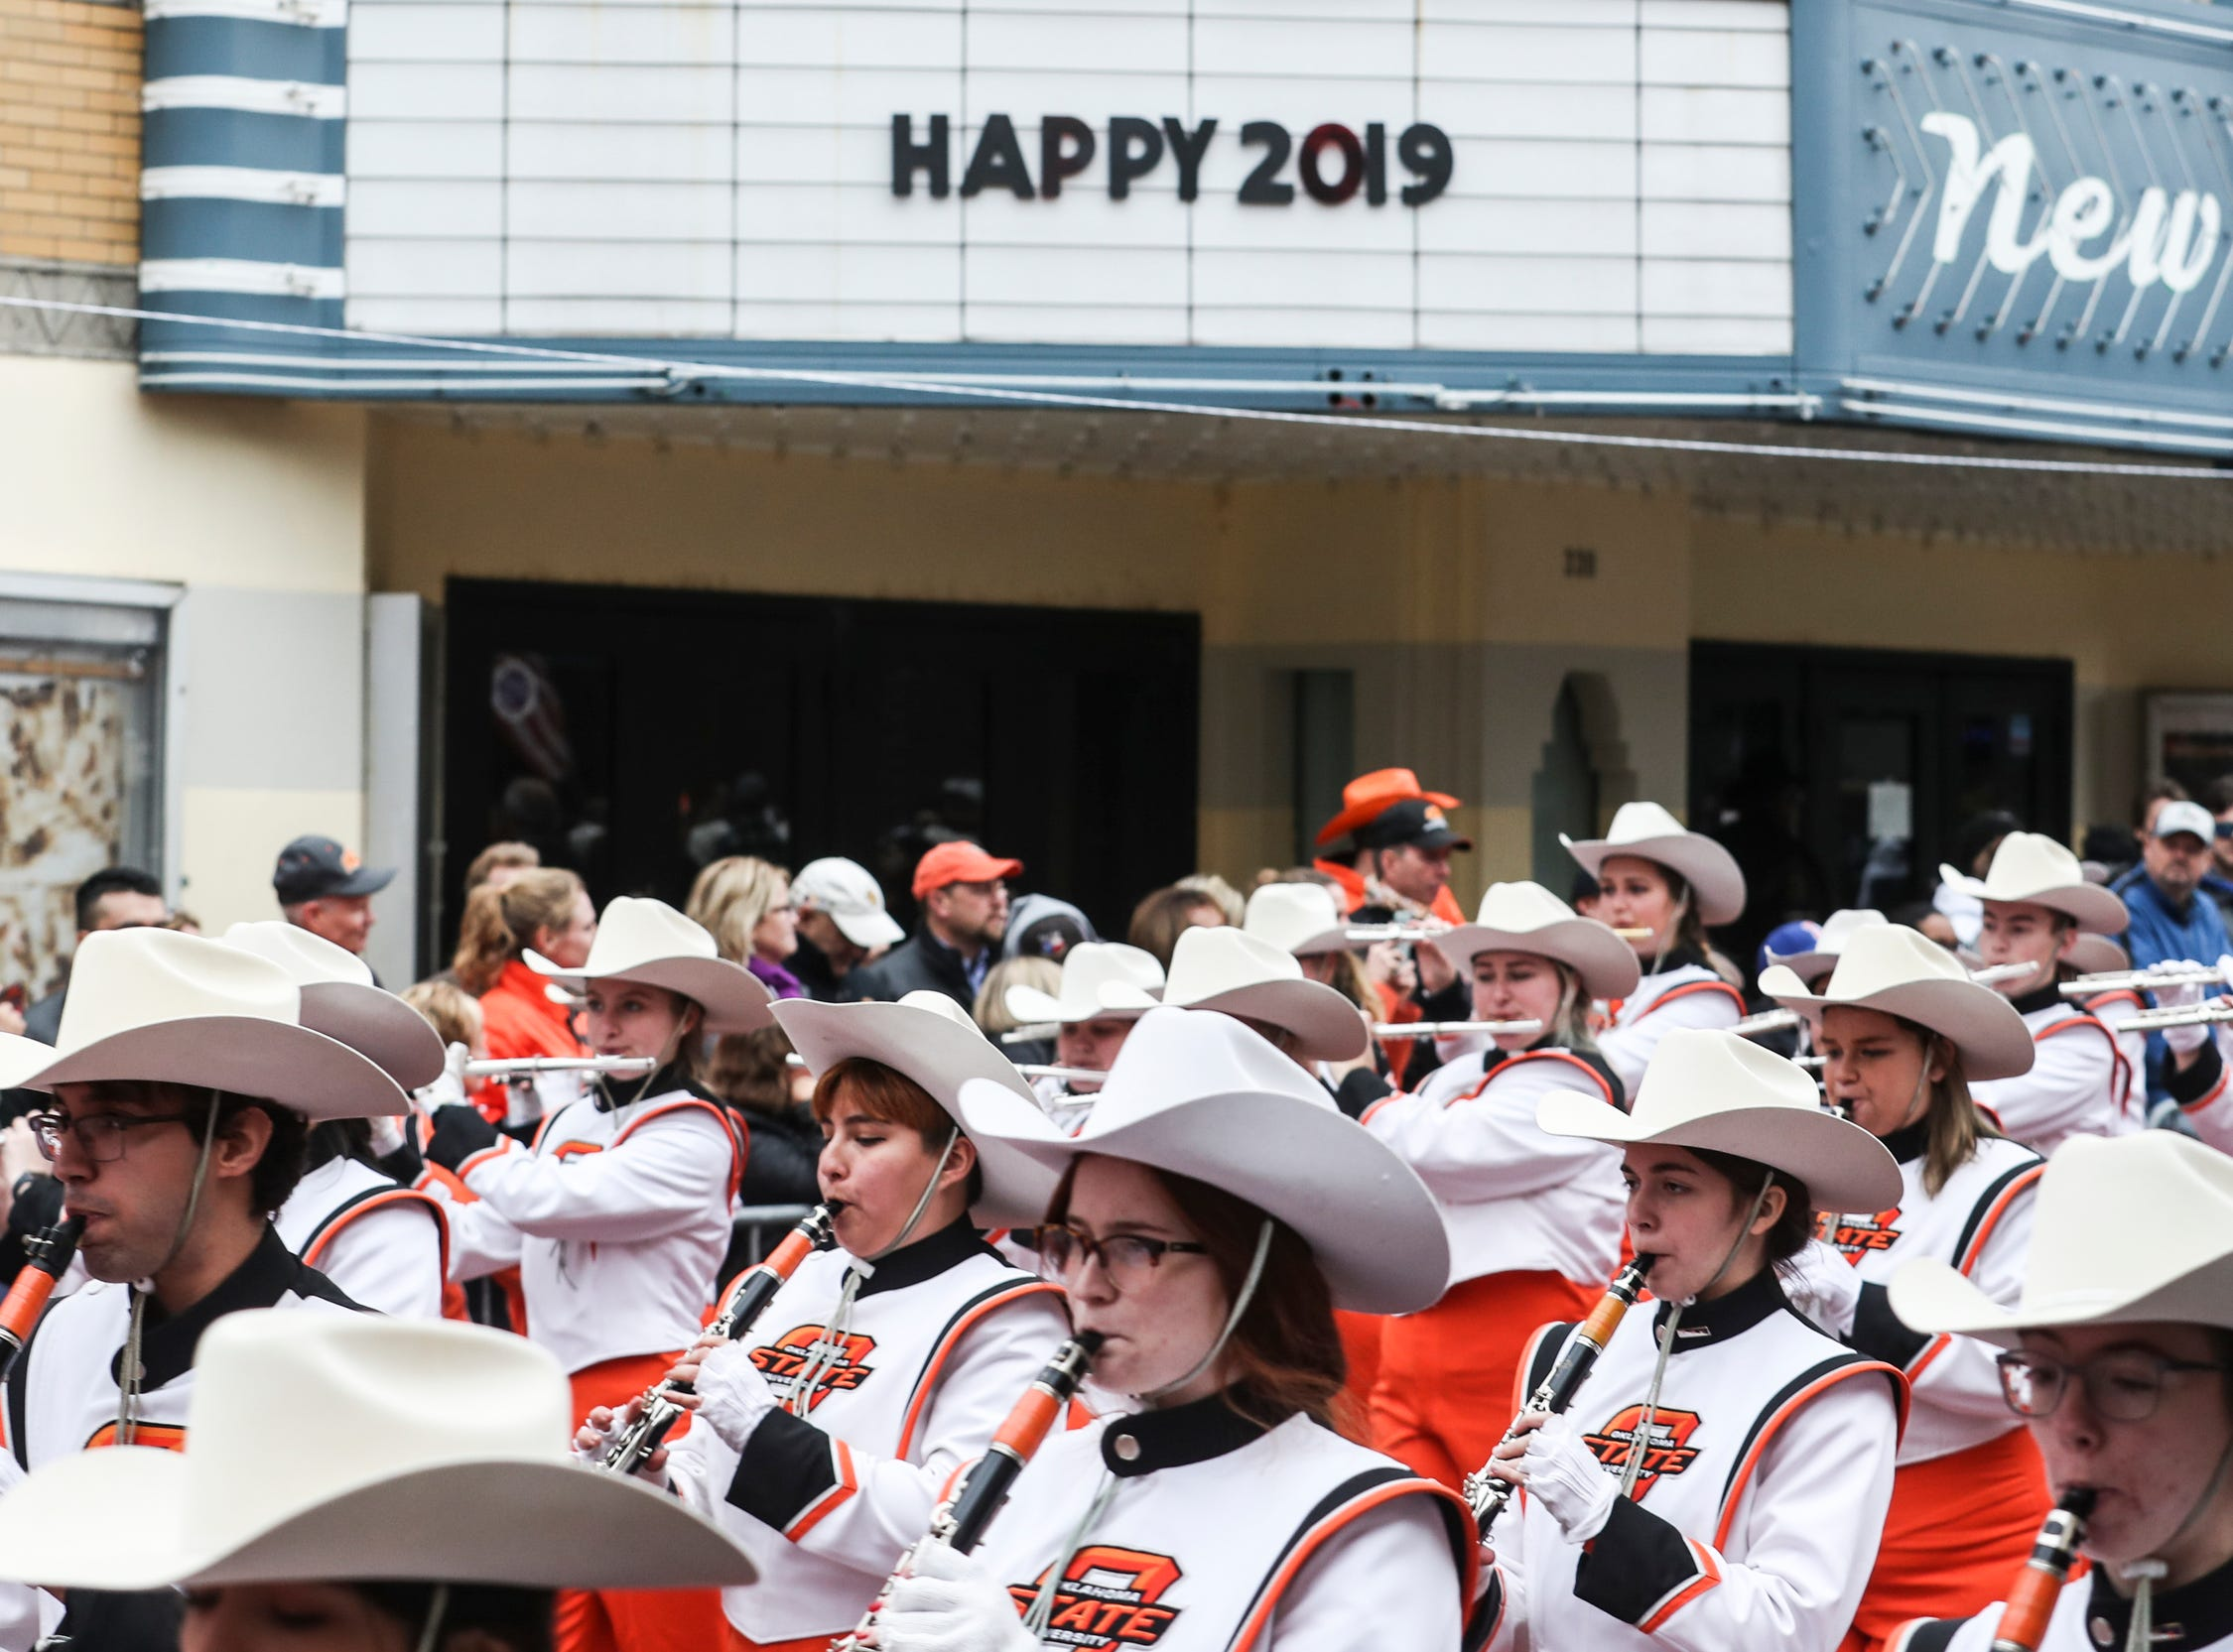 December 30 2018 - The Oklahoma State University Cowboy Marching Band make their way down Beale Street during the Annual Liberty Bowl Parade & Pep Rally on Sunday. On Monday Oklahoma State Cowboys and Missouri Tigers play in the 2018 AutoZone Liberty Bowl.